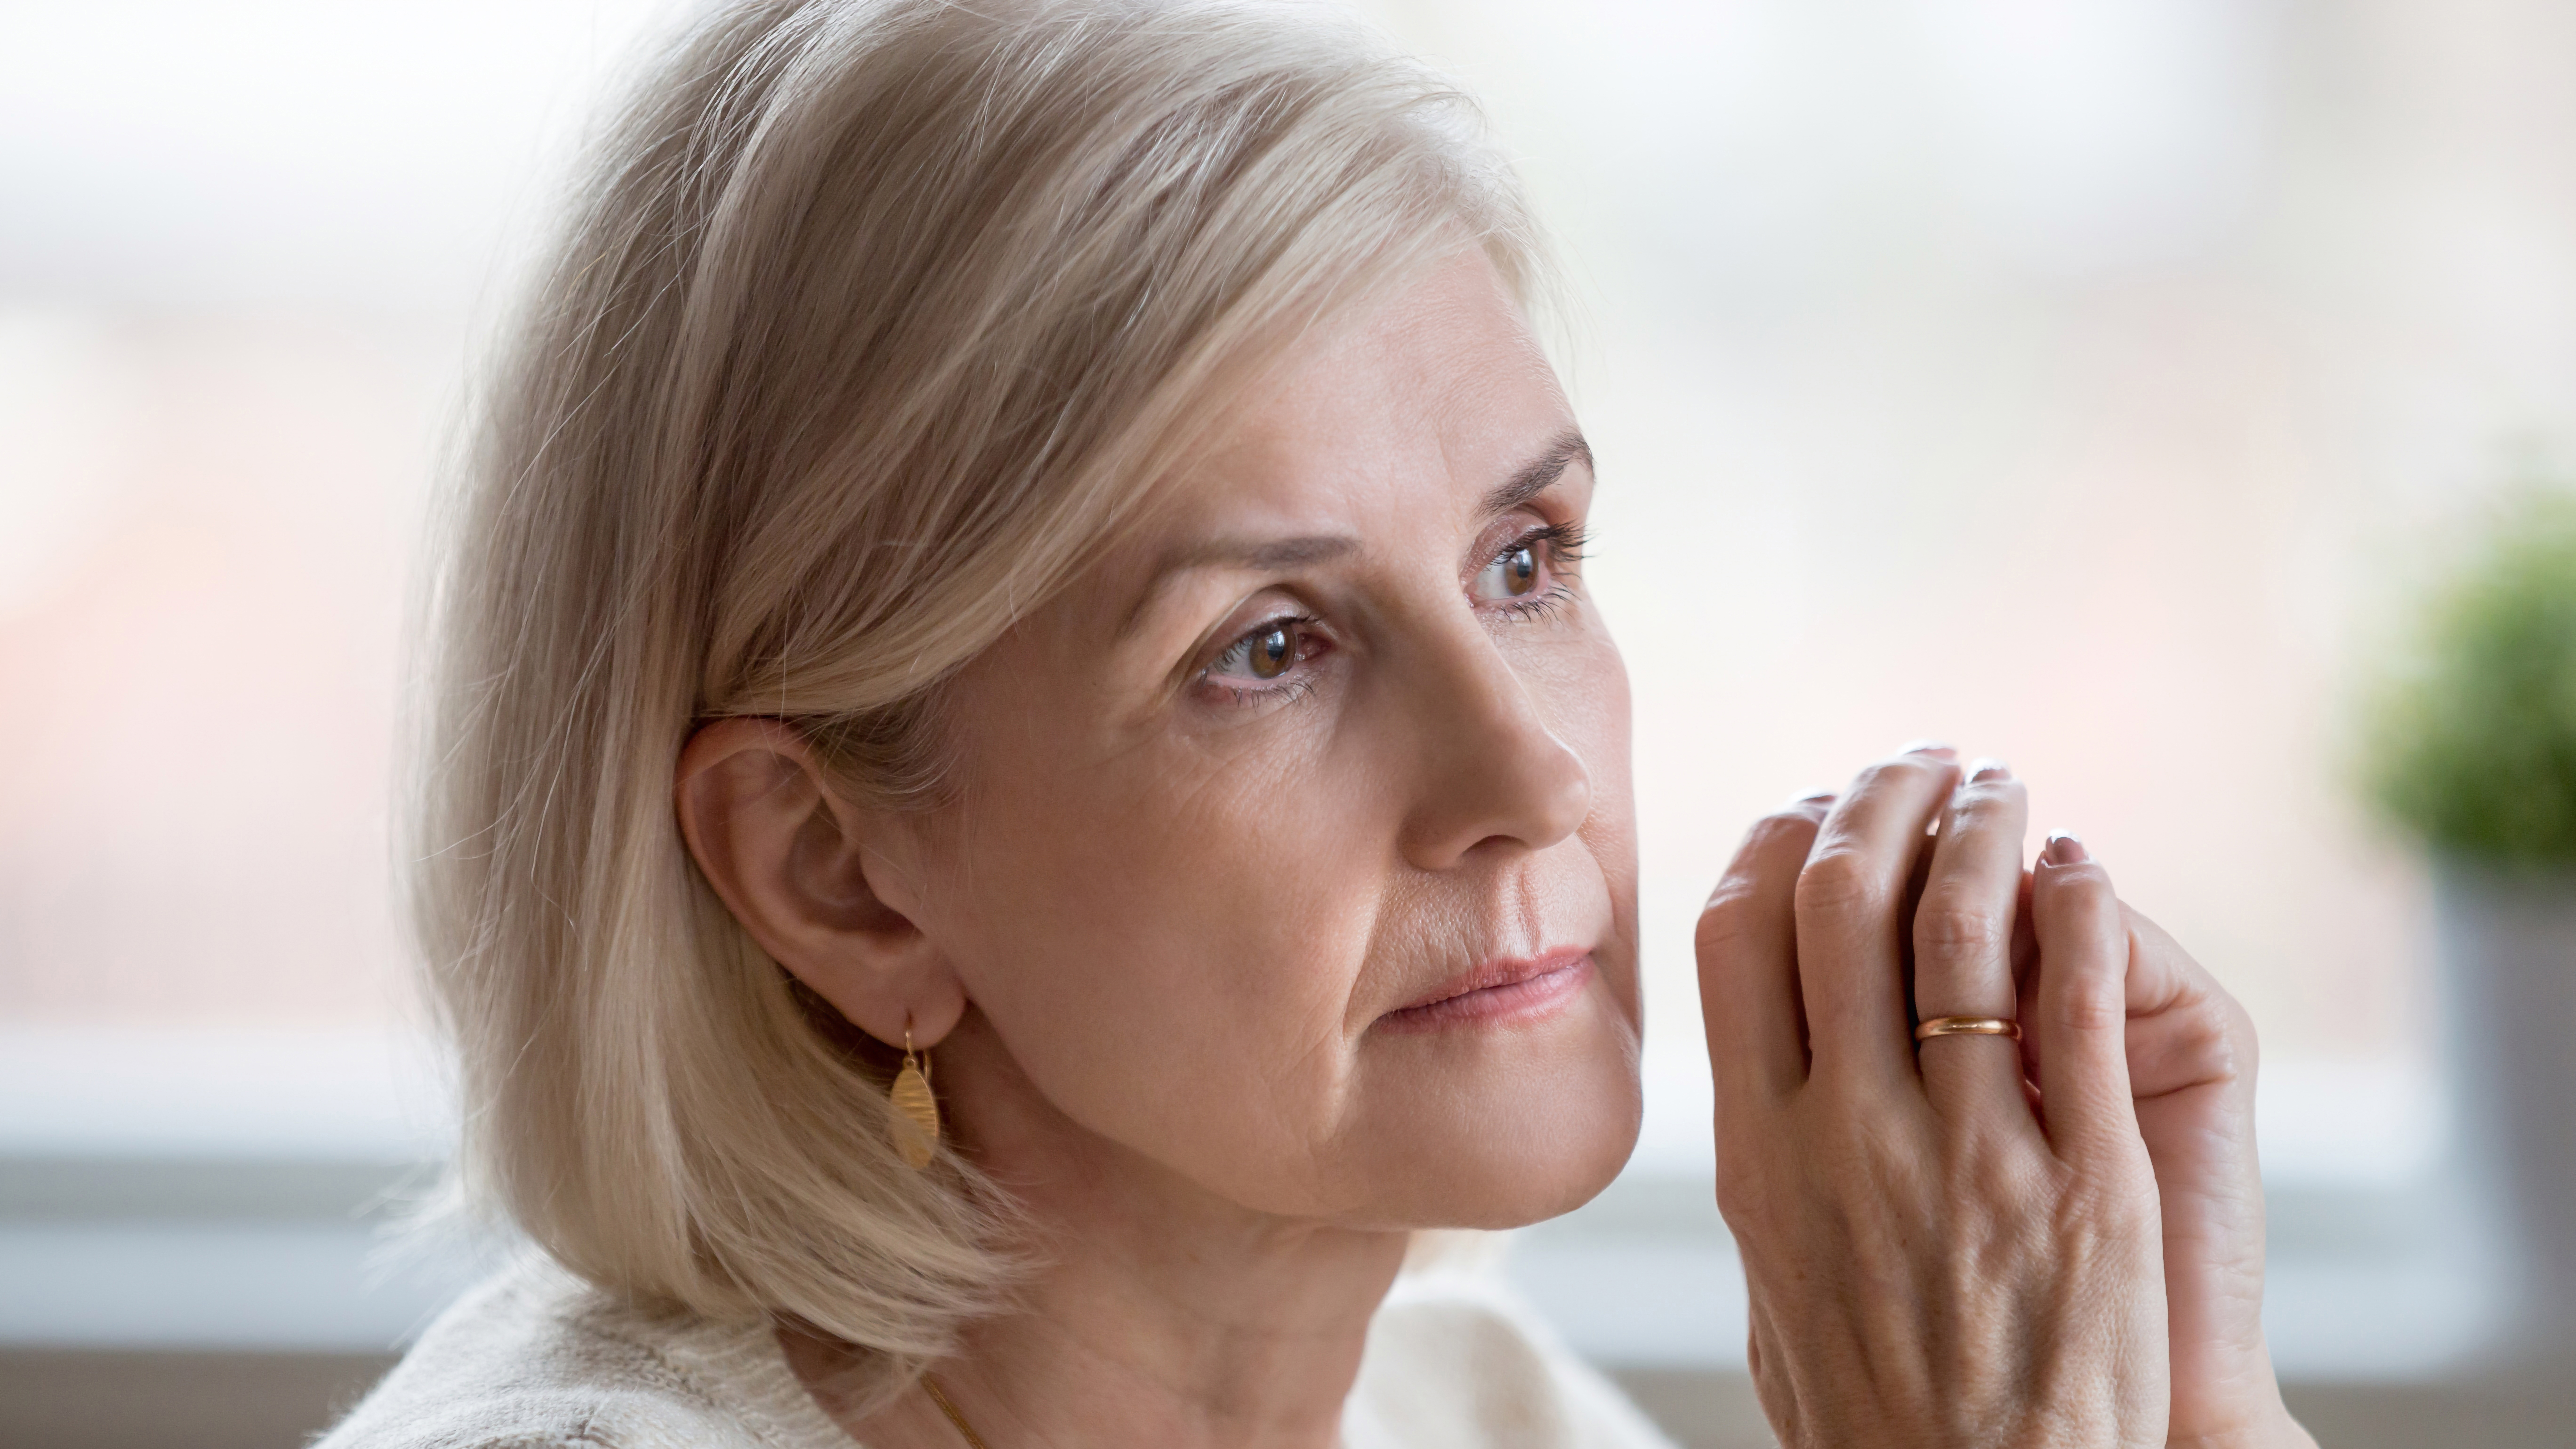 Introverted woman thoughtful